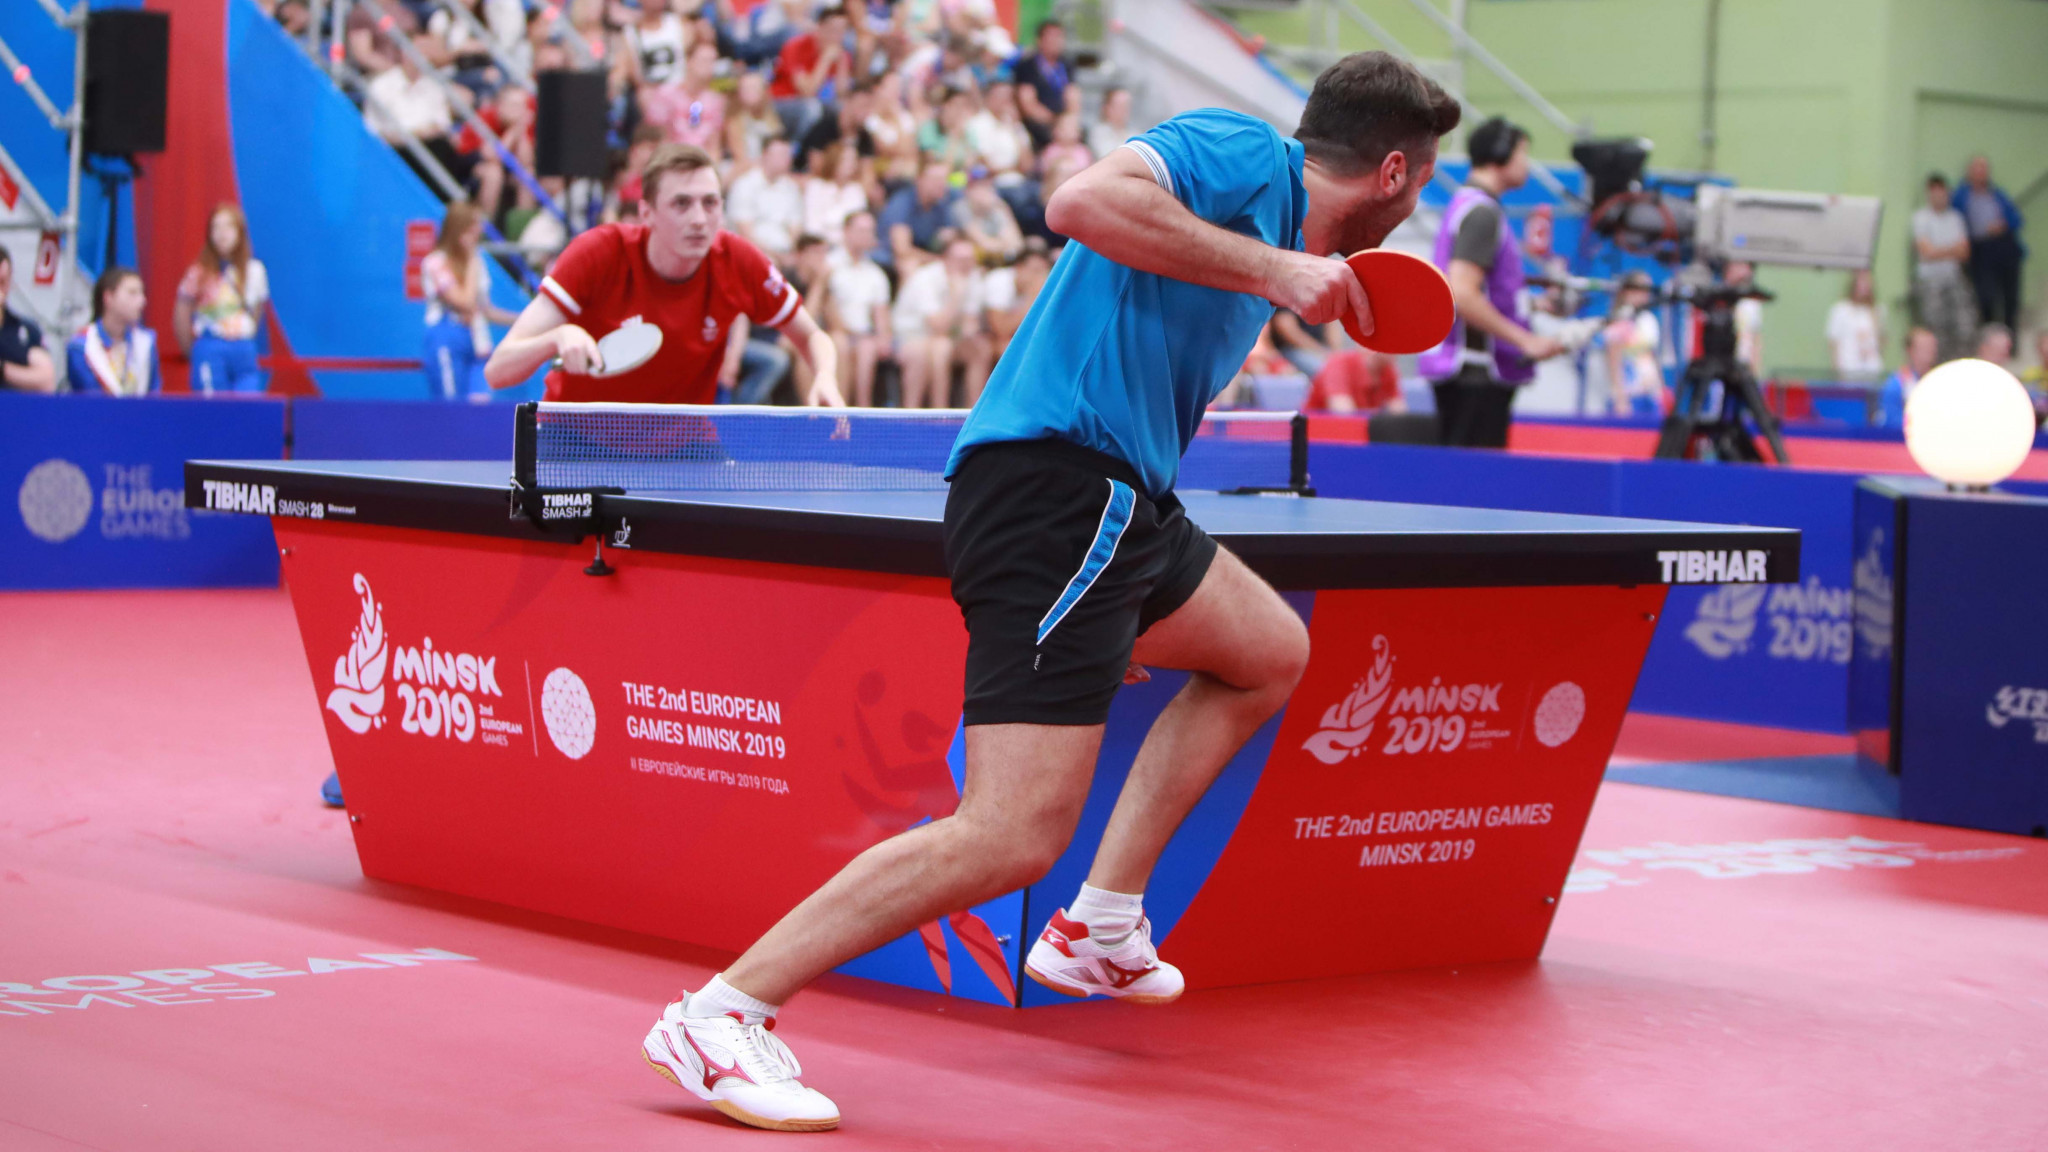 Table tennis officially confirmed for 2023 European Games